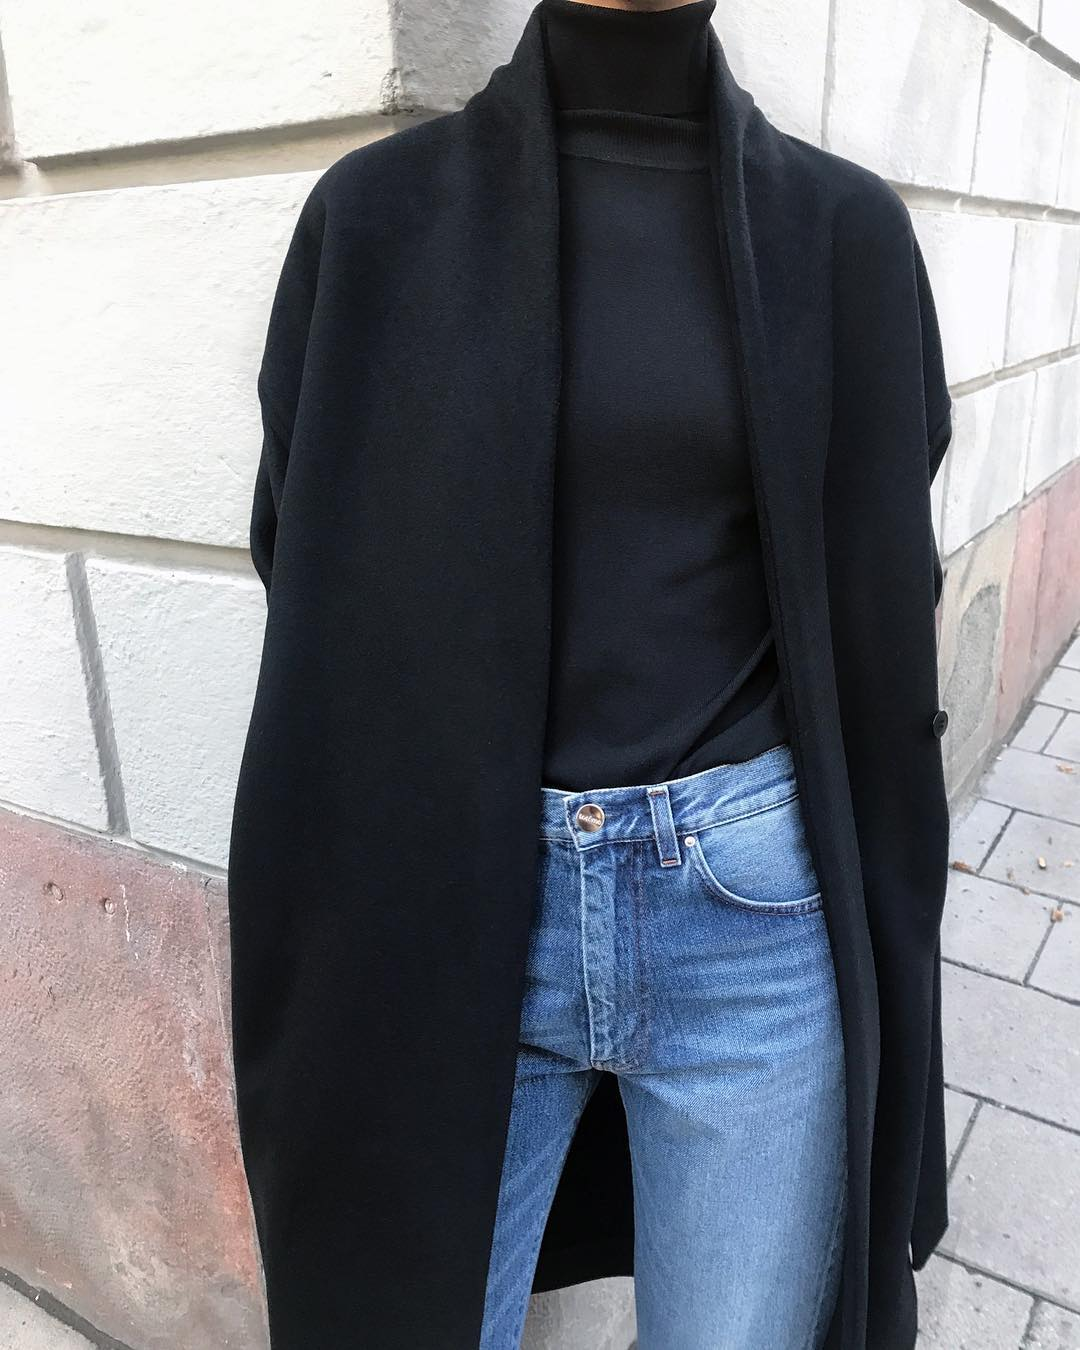 Minimalist Fall Outfit Idea — Black Coat, Turtleneck, and Jeans